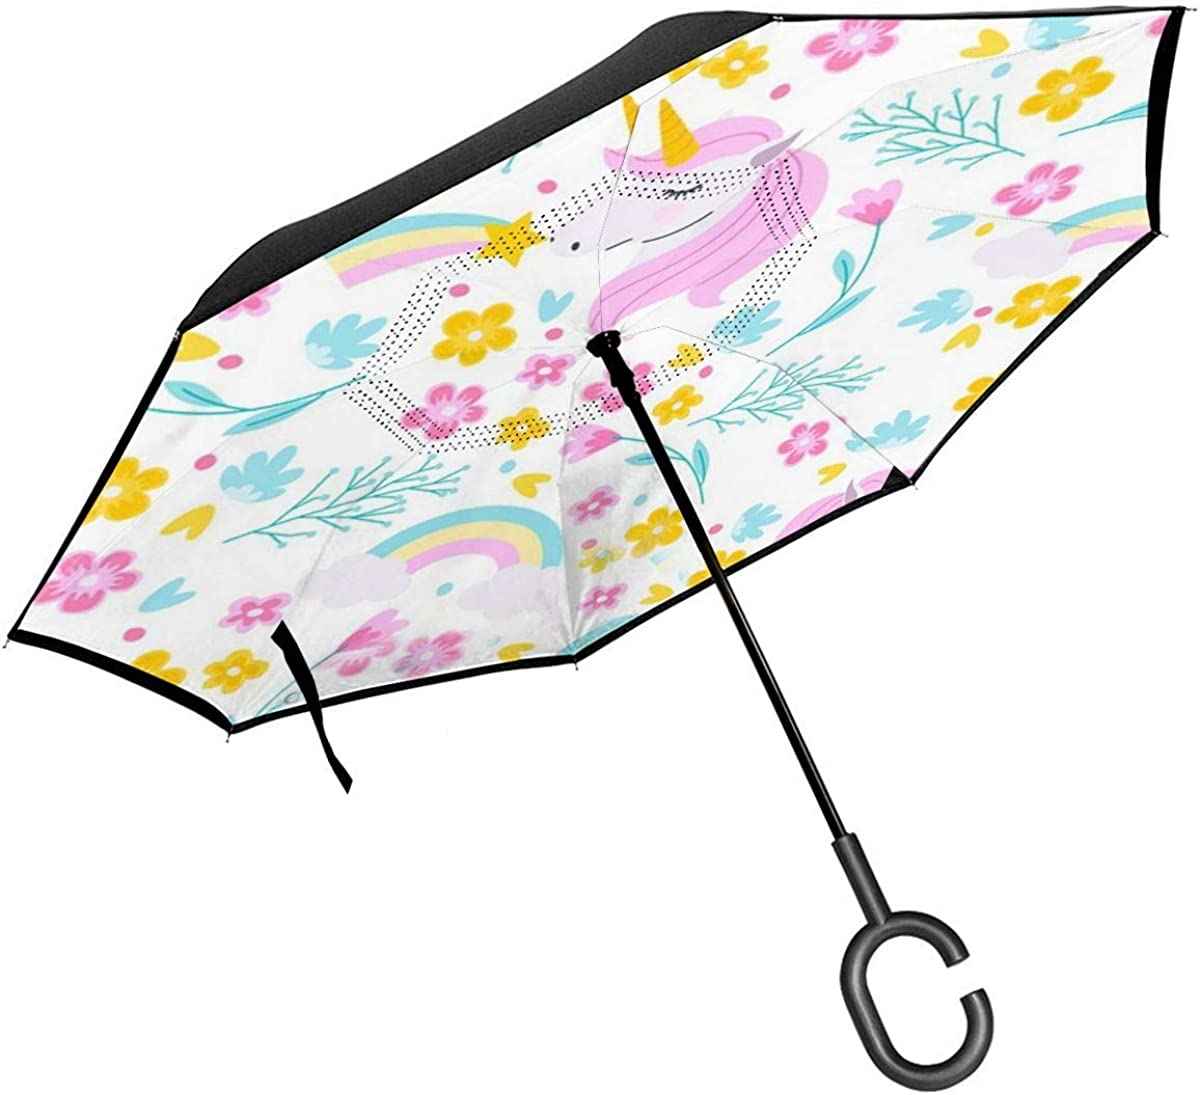 Flat Unicorn Pattern Reverse Umbrella Double Layer Inverted Umbrellas For Car Rain Outdoor With C-Shaped Handle Personalized